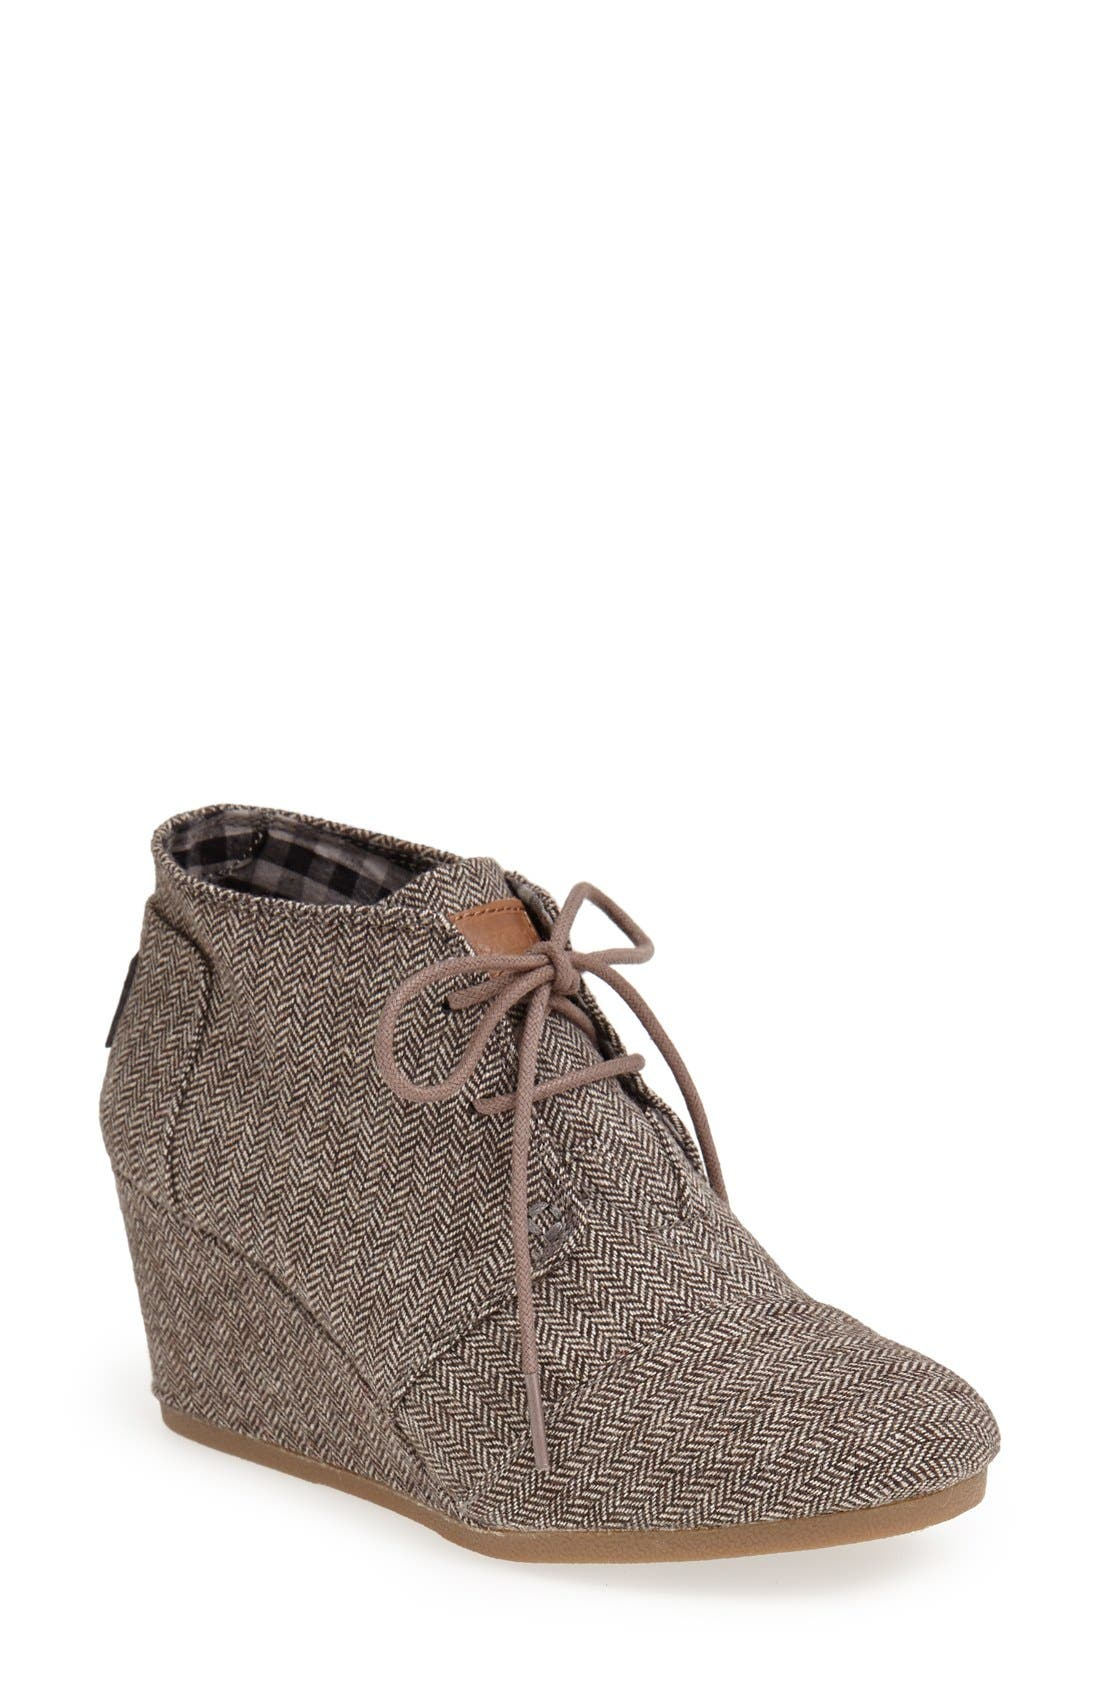 'Desert' Herringbone Wedge Bootie,                             Main thumbnail 1, color,                             Grey